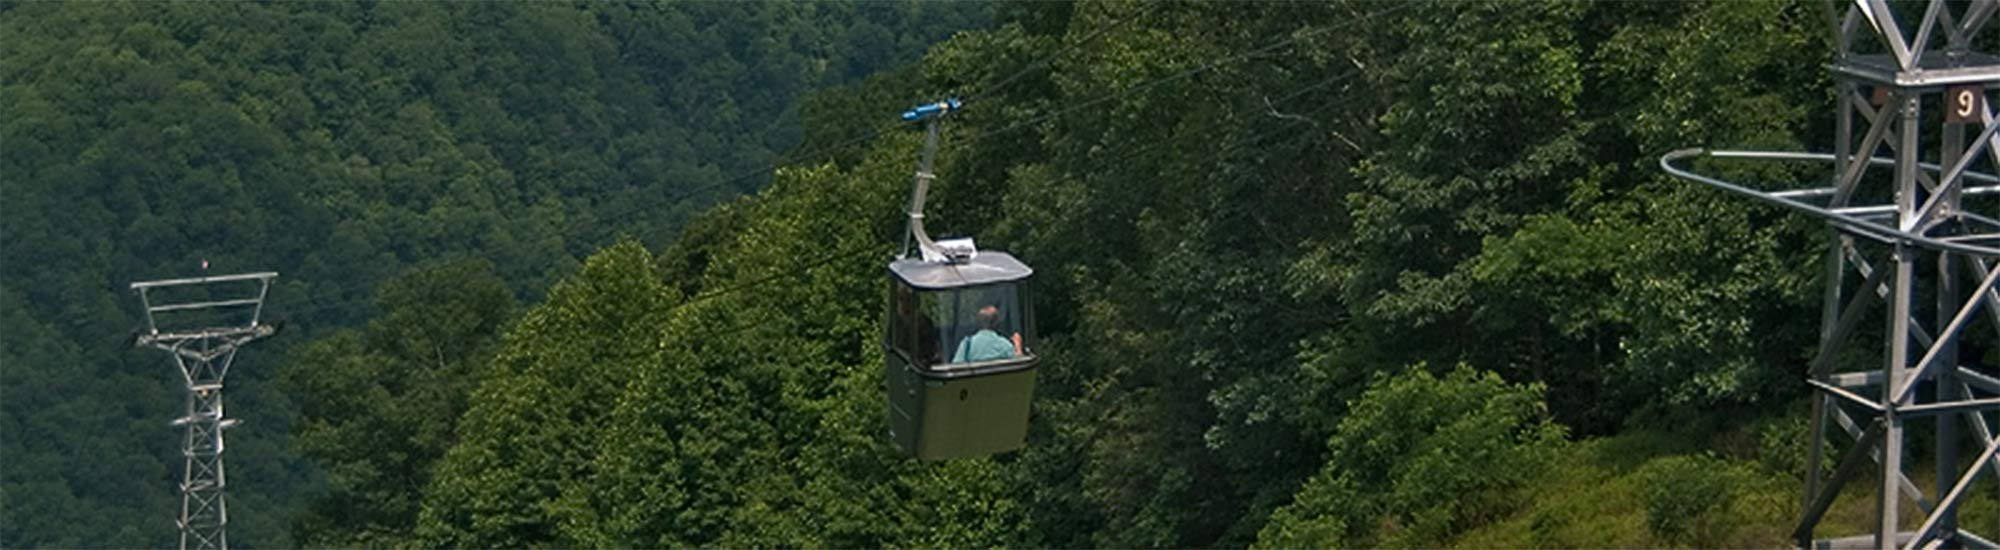 Things To Do In Pipestem Wv Rv Camping In Wv Pipestem